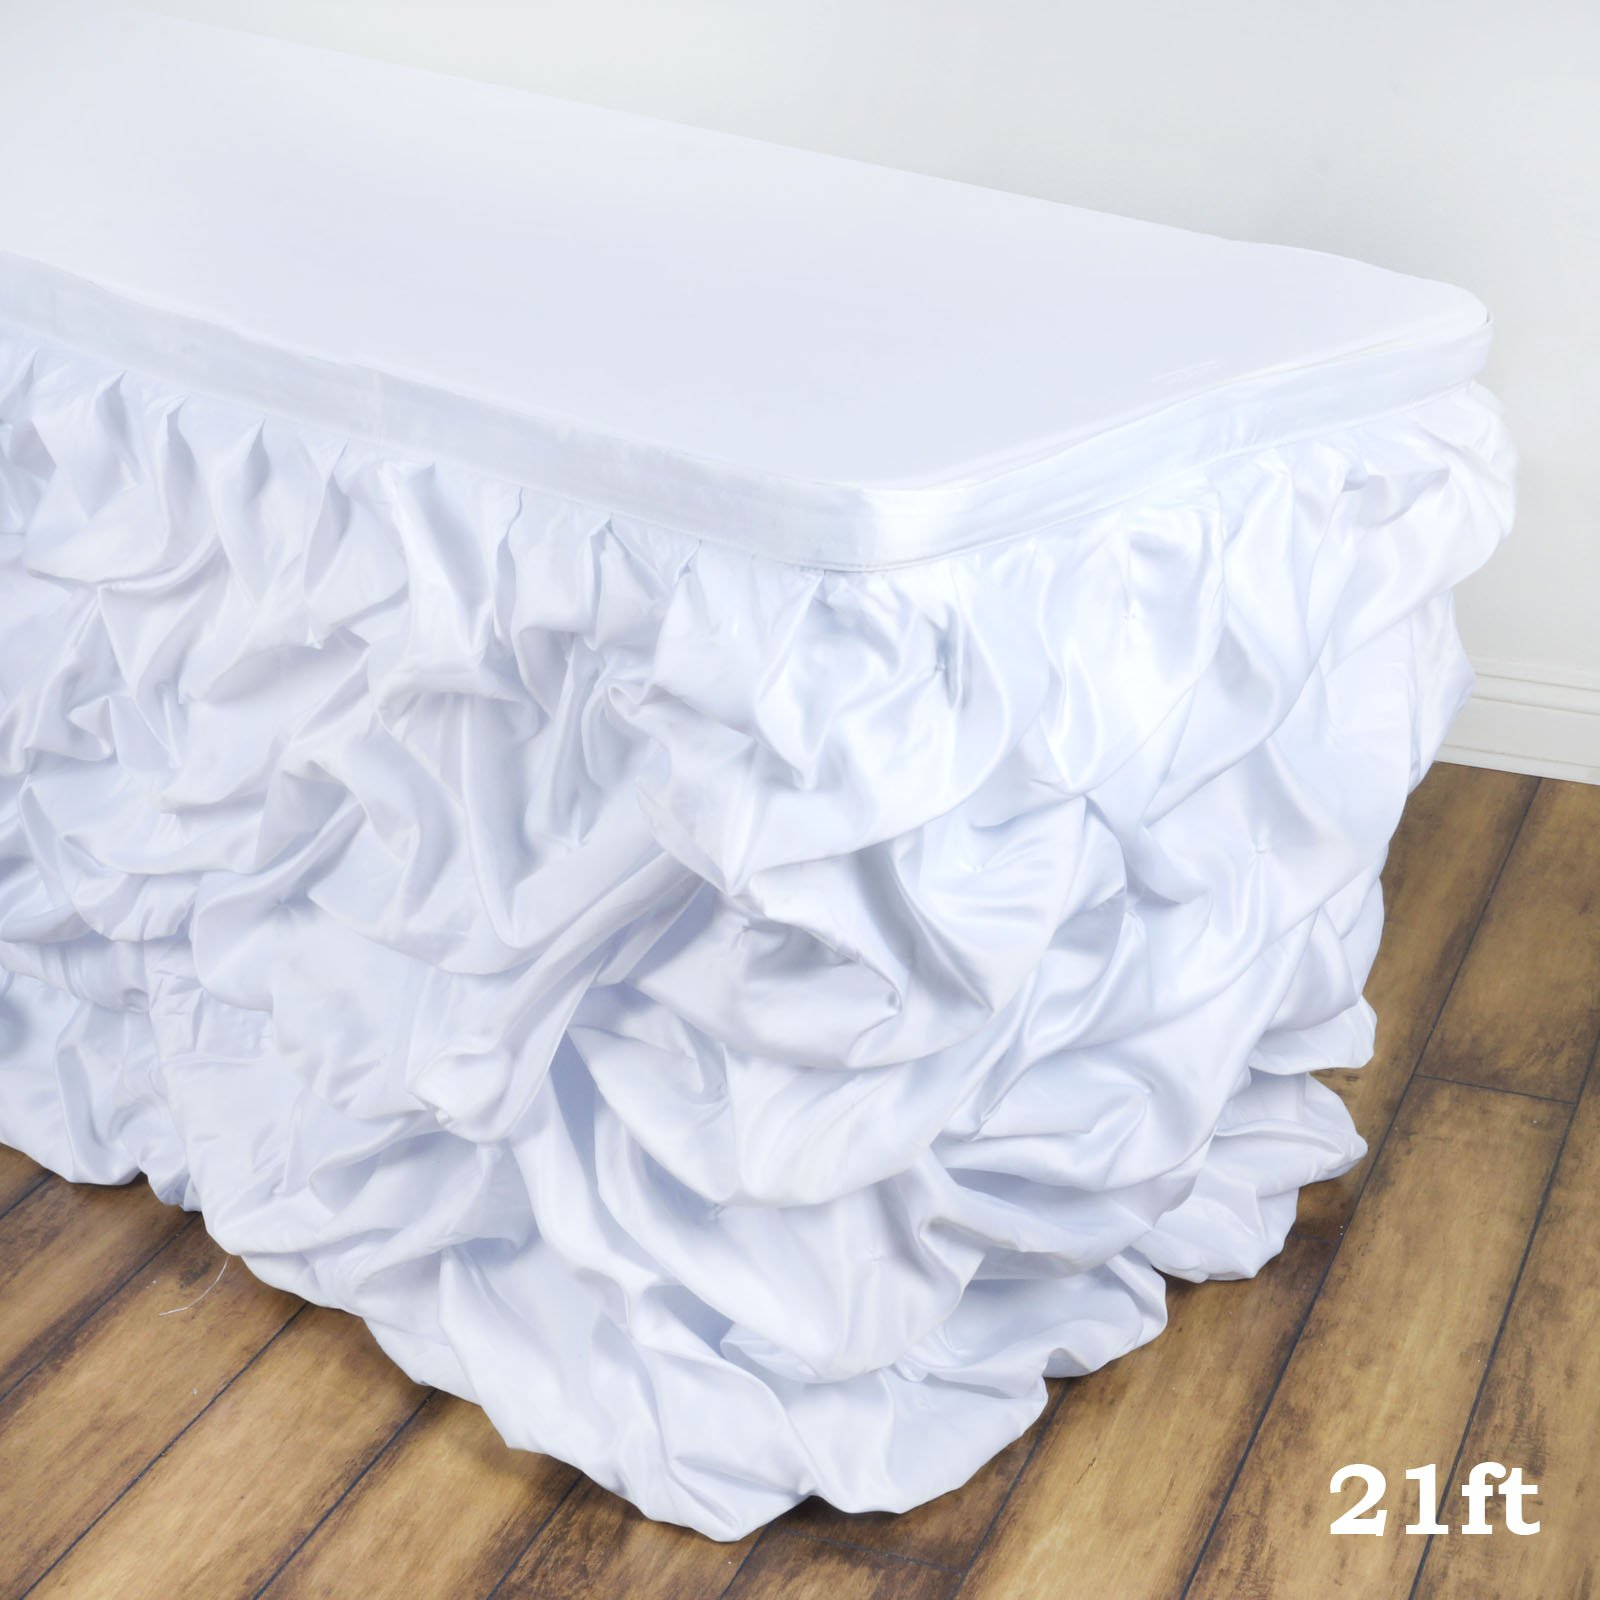 Efavormart Chic Miteux Lamour Satin Table Skirt for Kitchen Dining Catering Wedding Birthday Party Decorations Events - White by Efavormart.com